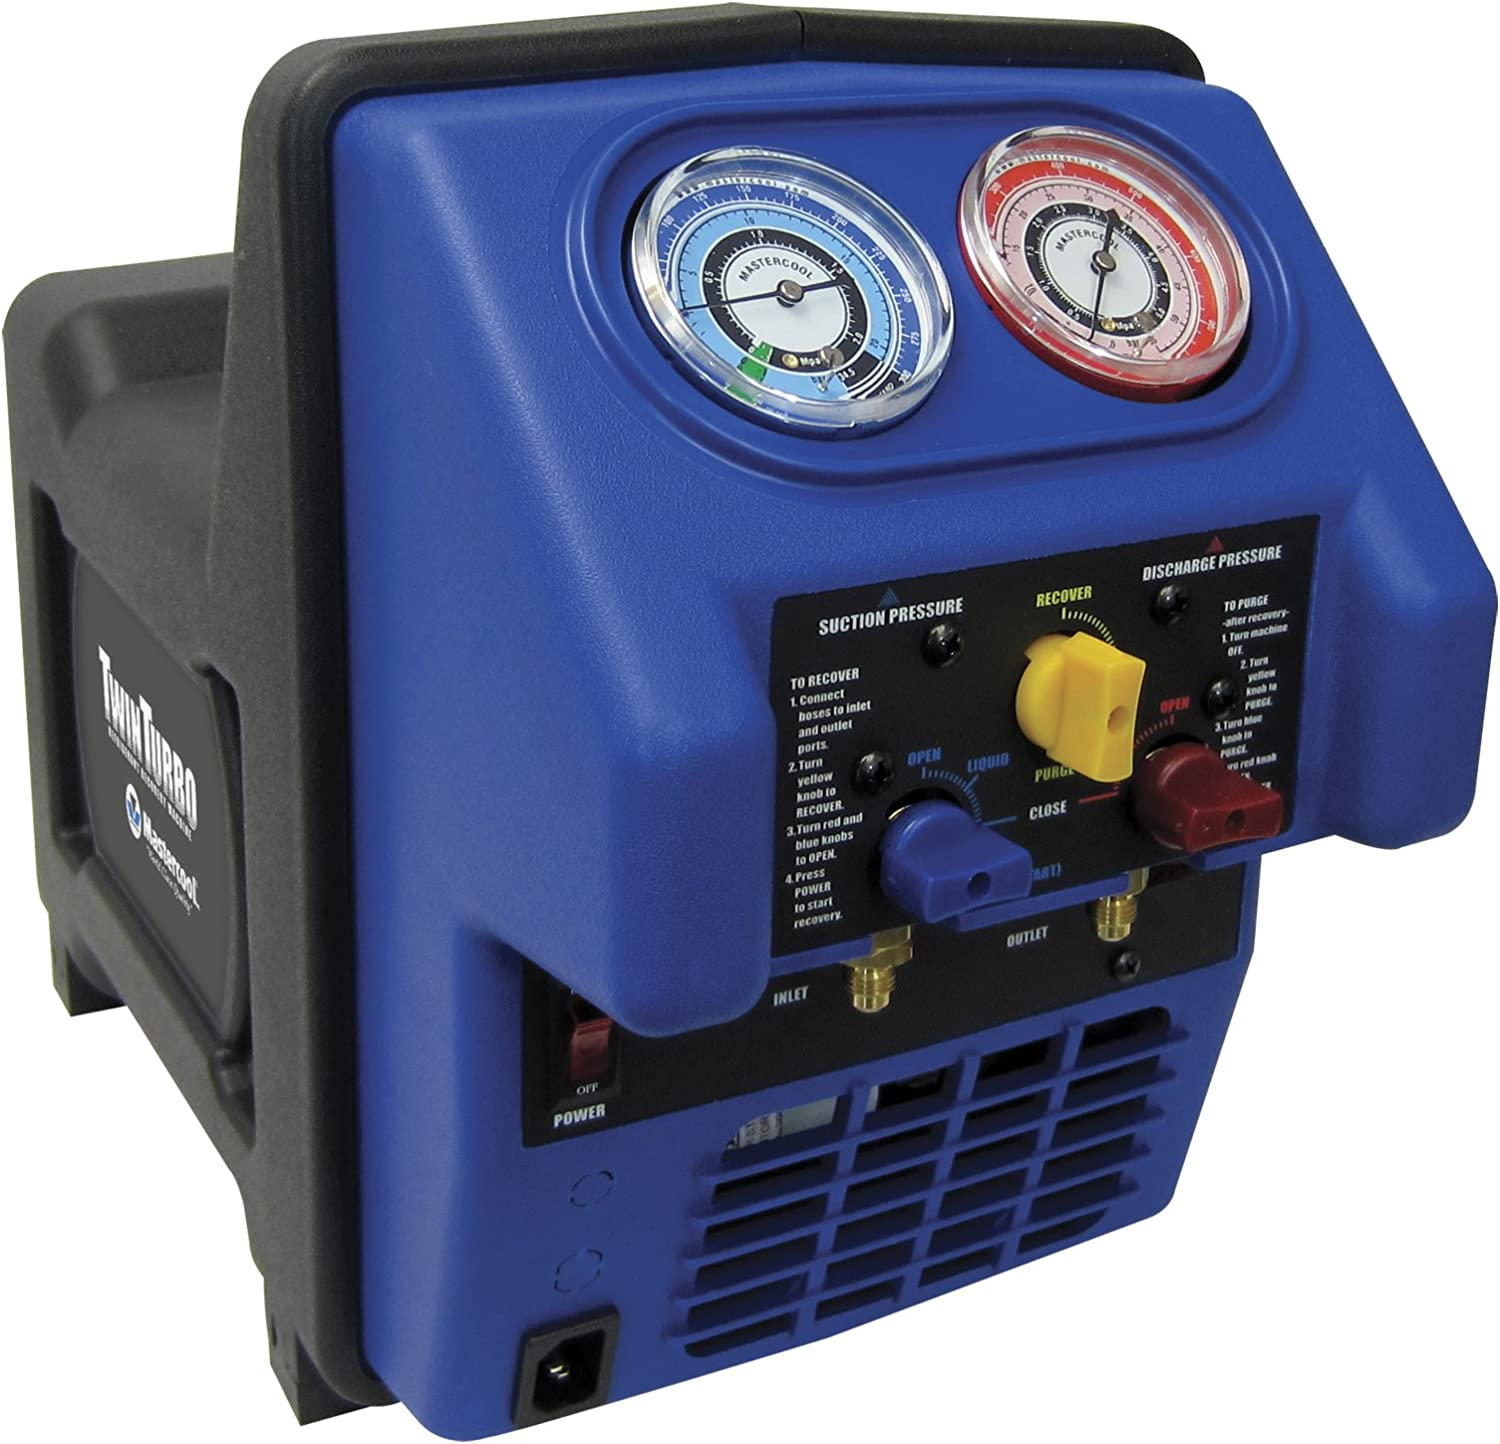 MASTERCOOL Refrigerant Recovery Black Blue System Twin Turbo